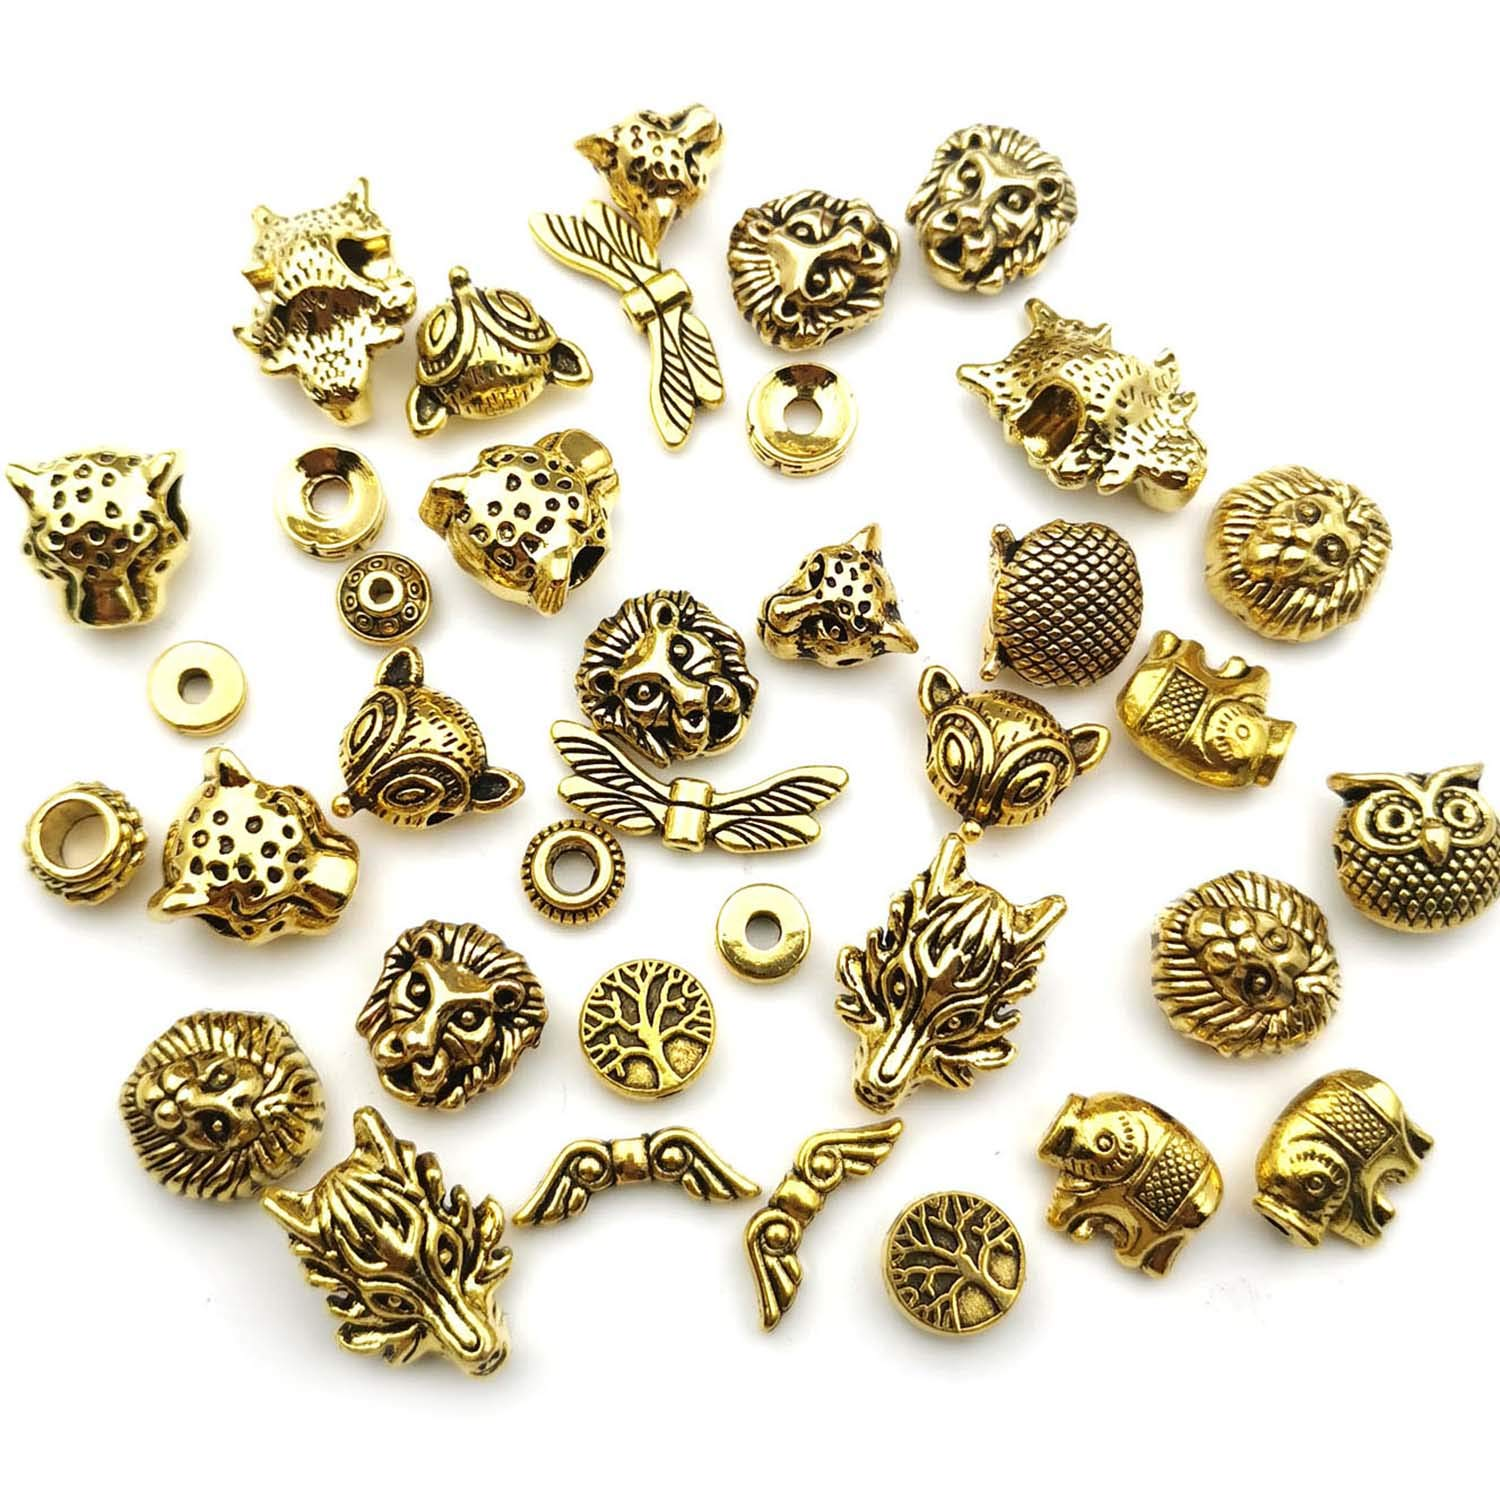 Youdiyla 64pcs Space Beads Charms Collection Antique Gold Tone Mix Gold European Spacer Loose Hole Metal Beads Craft Supplies Findings for Necklace and Bracelet Jewelry Making HM247